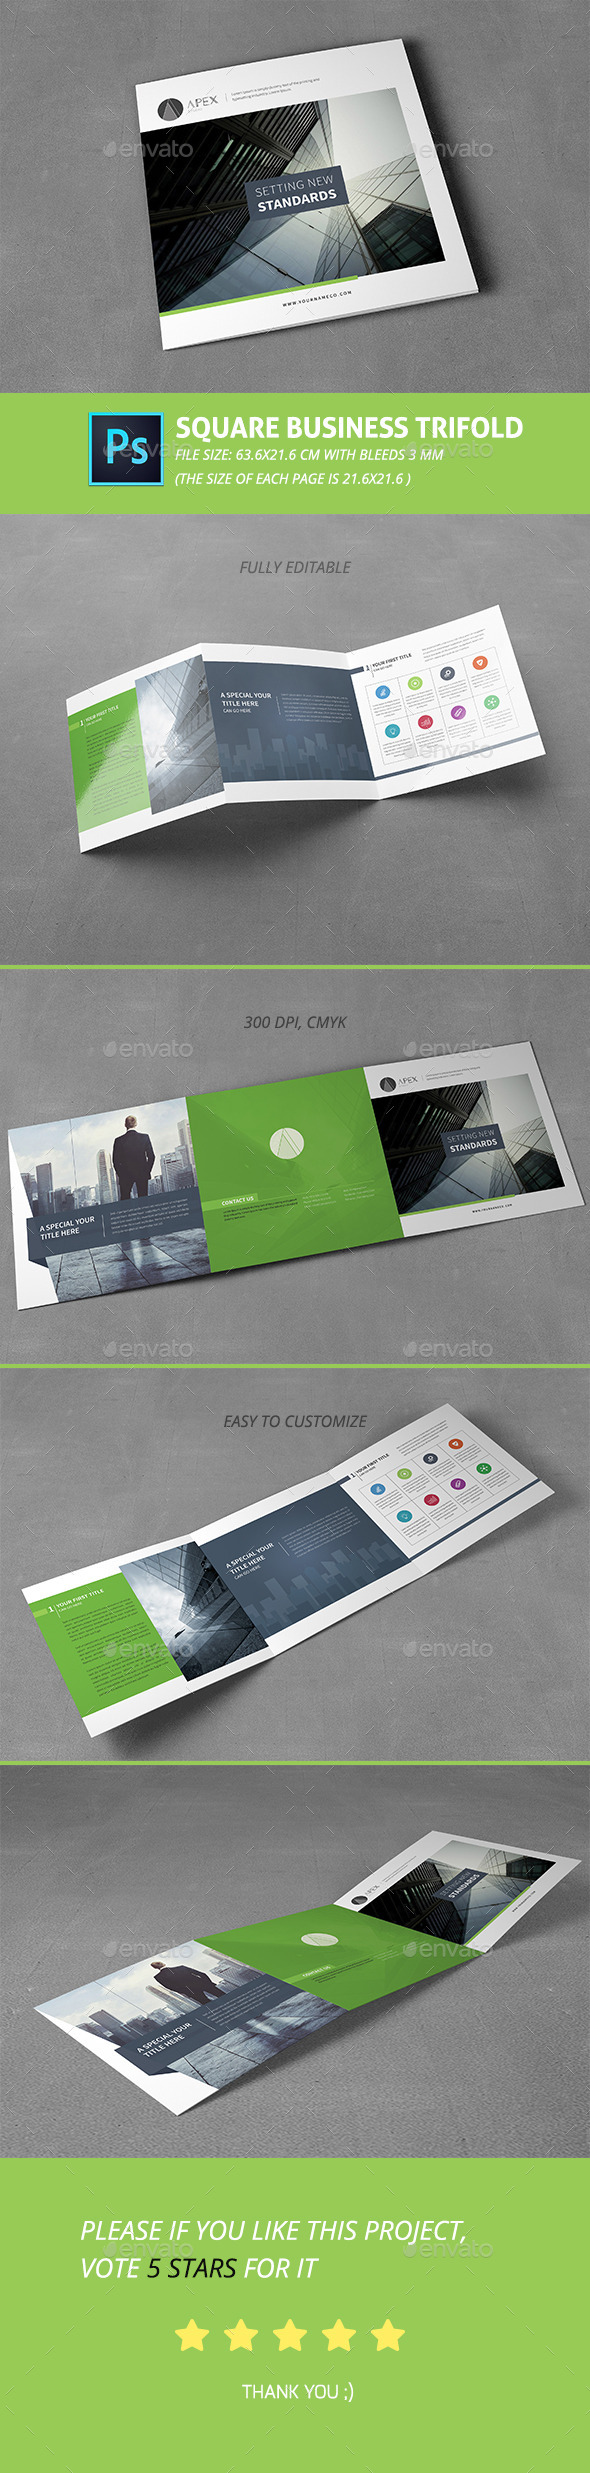 Square Business Trifold - Corporate Brochures